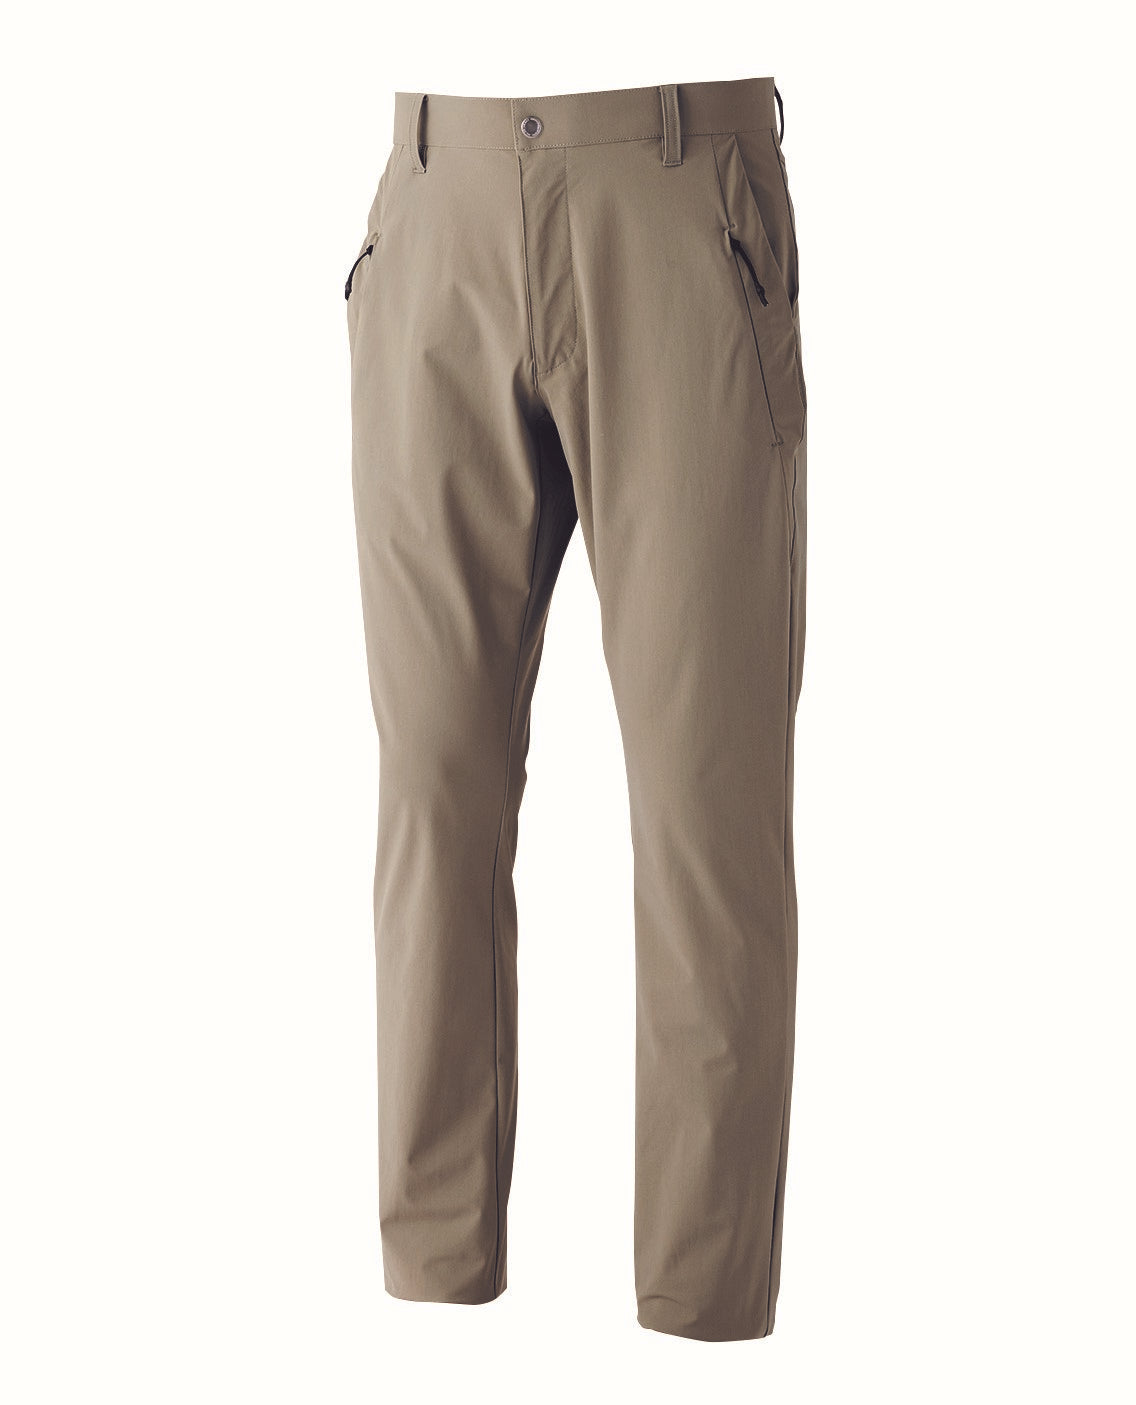 XEBEC 6062 Cool contact feeling stretch pants